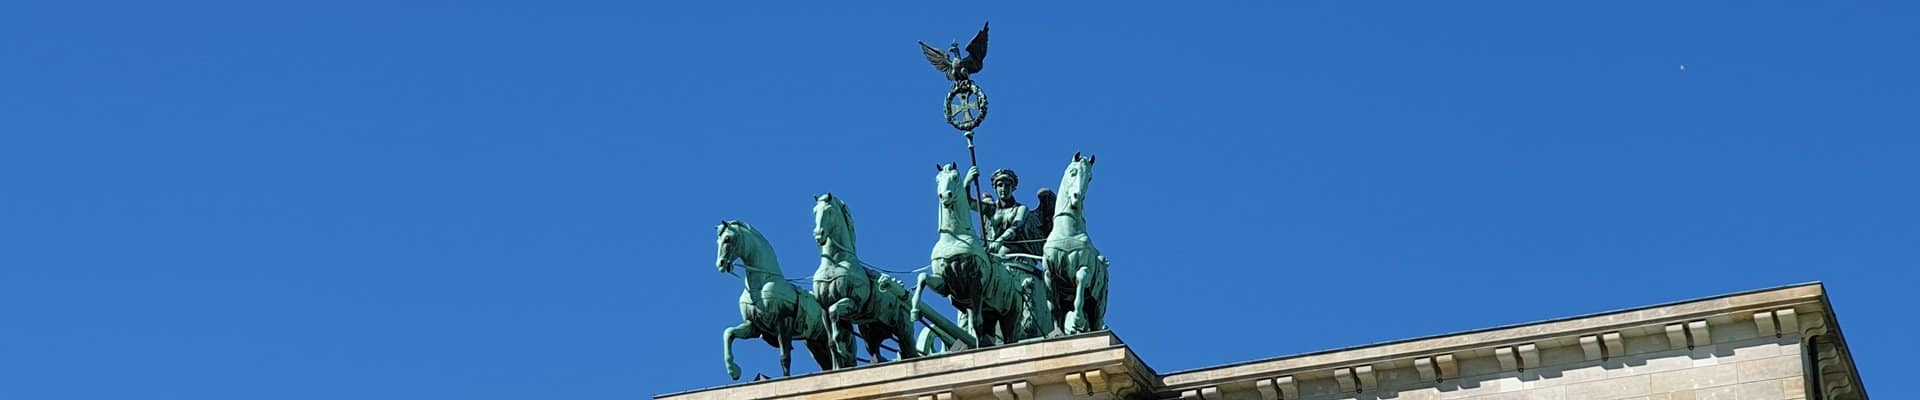 Archaeology Travel   Berlin City Guide   5